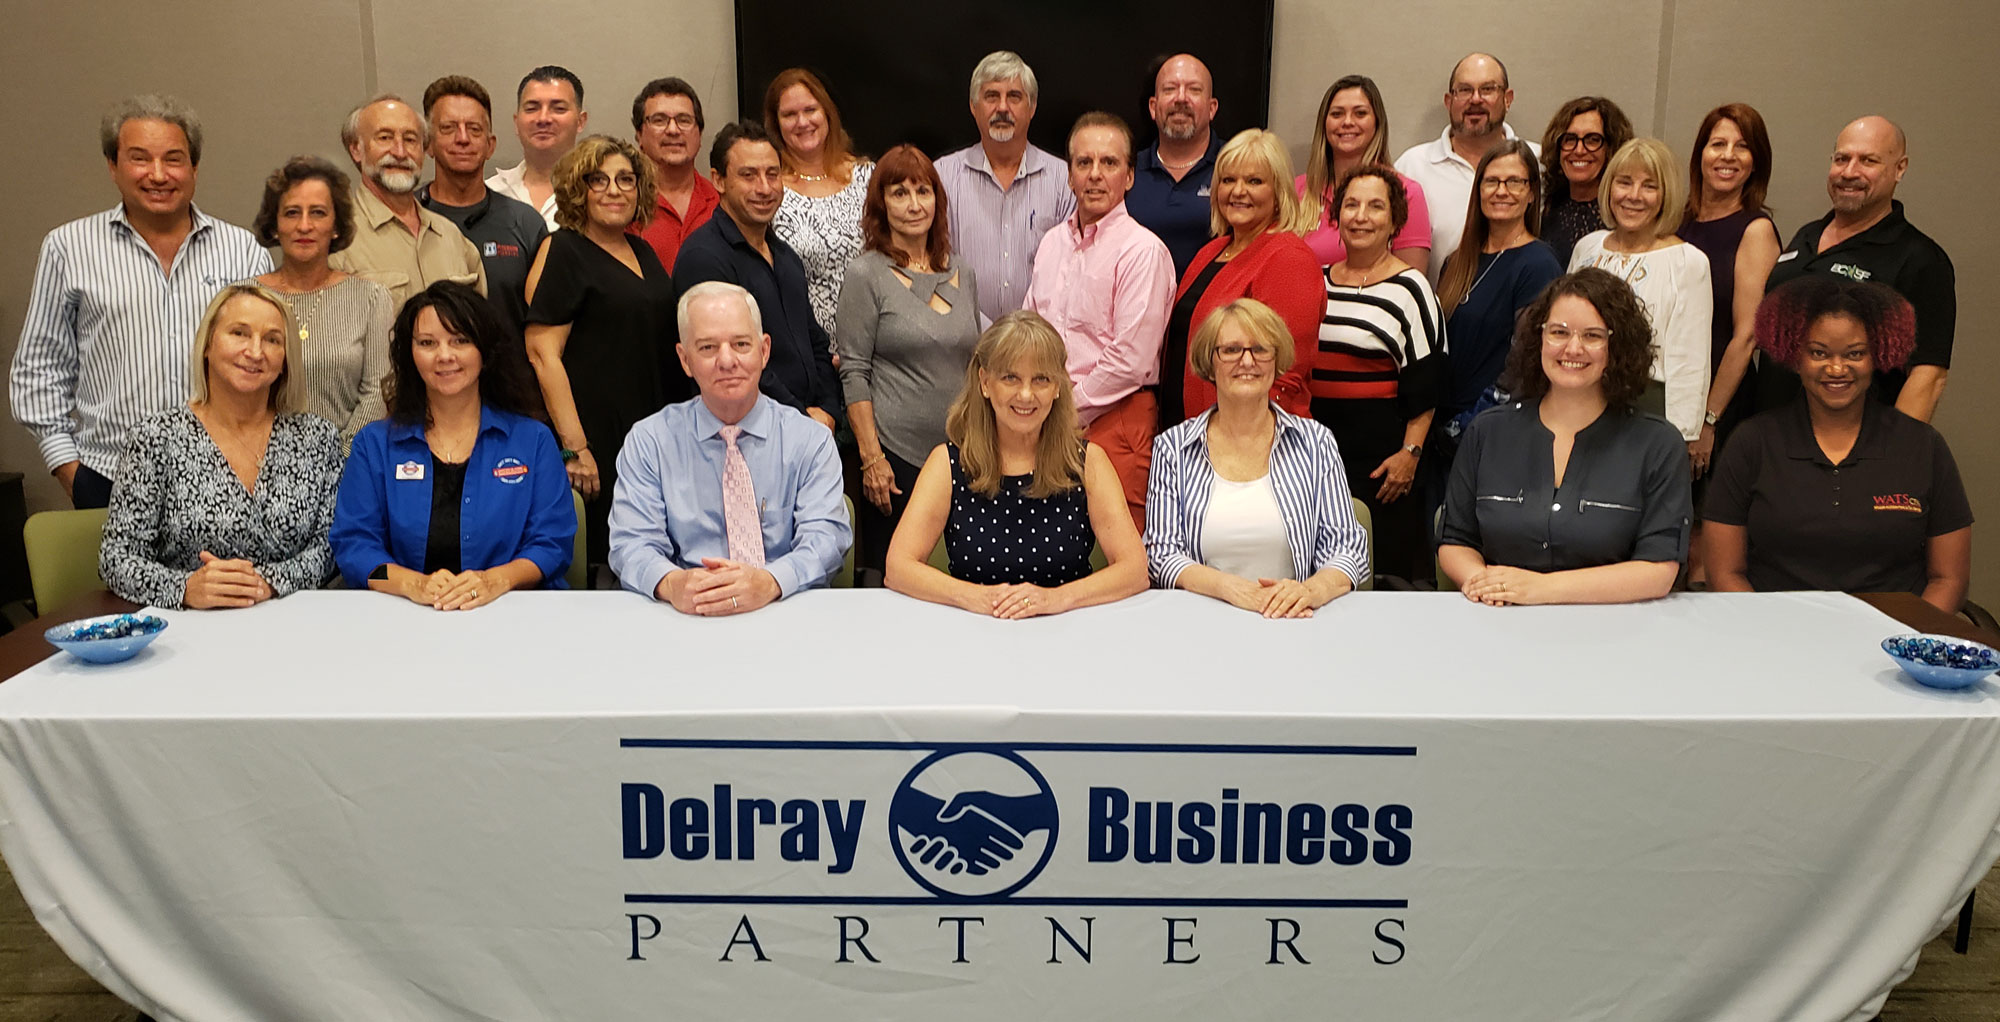 delray business partners leads group members